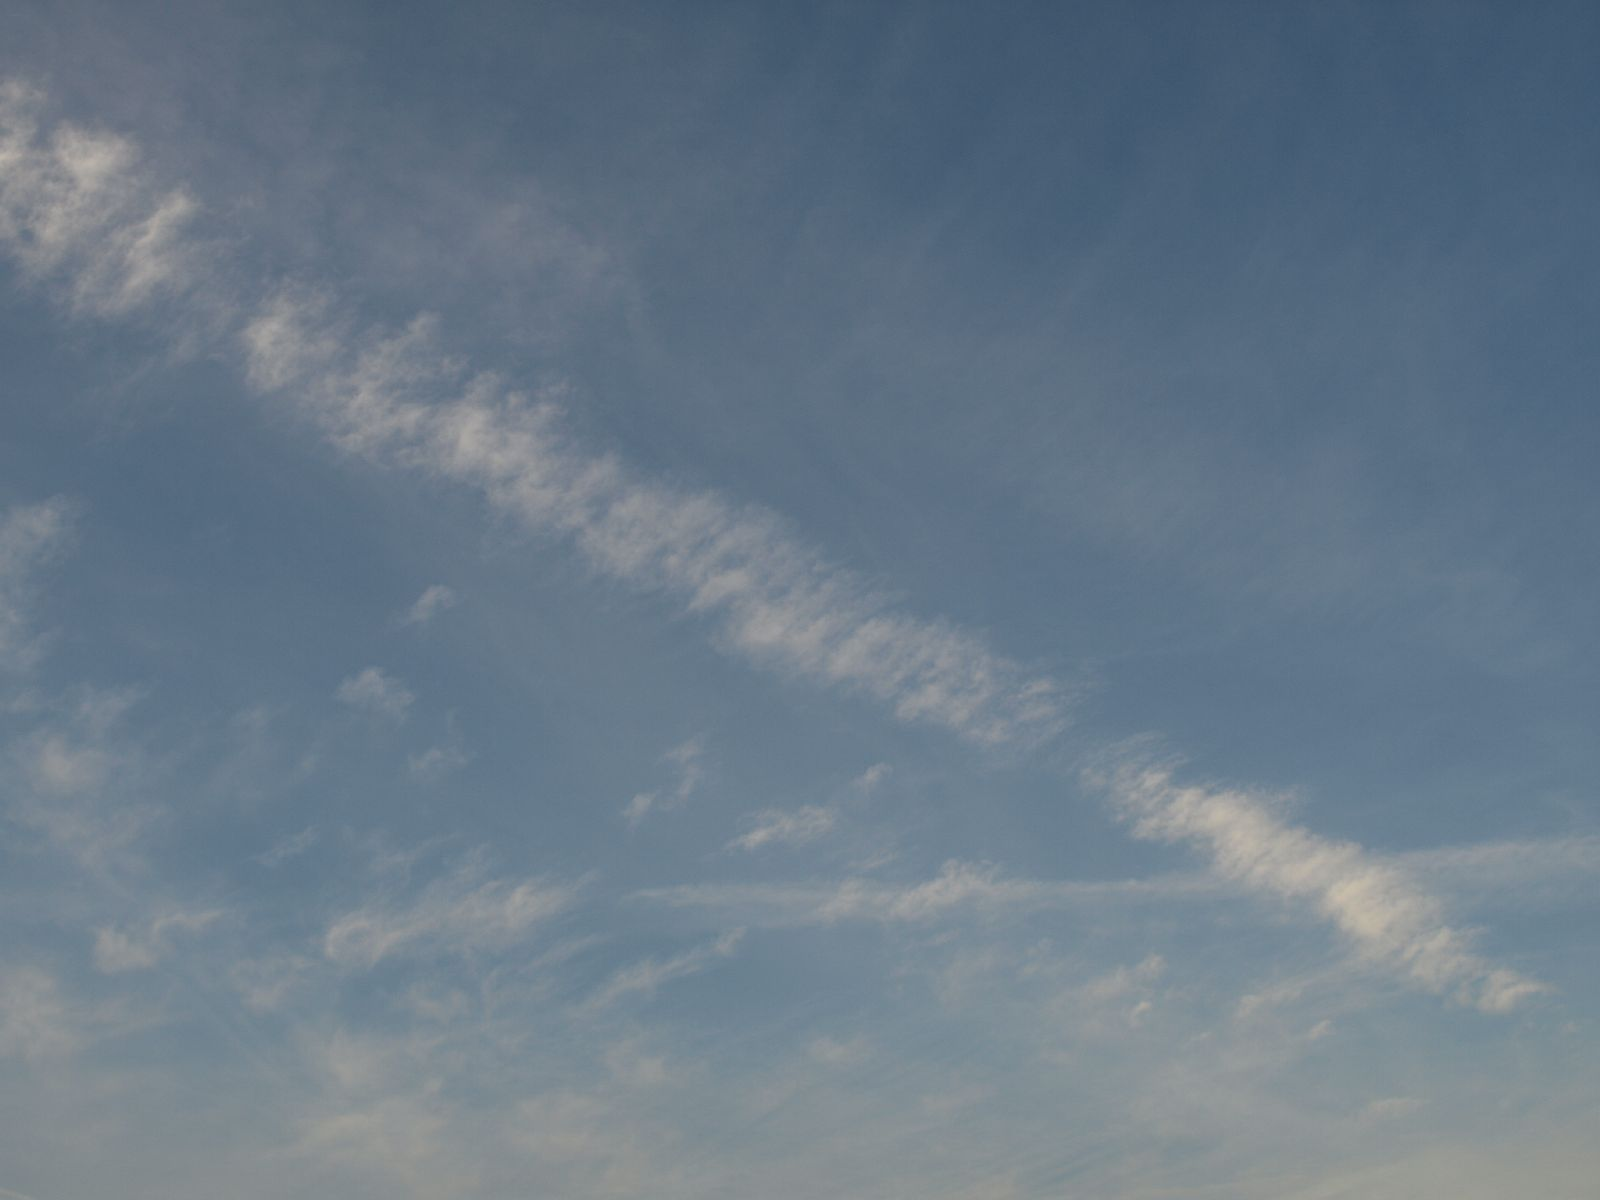 Sky_Clouds_Photo_Texture_A_P9285537